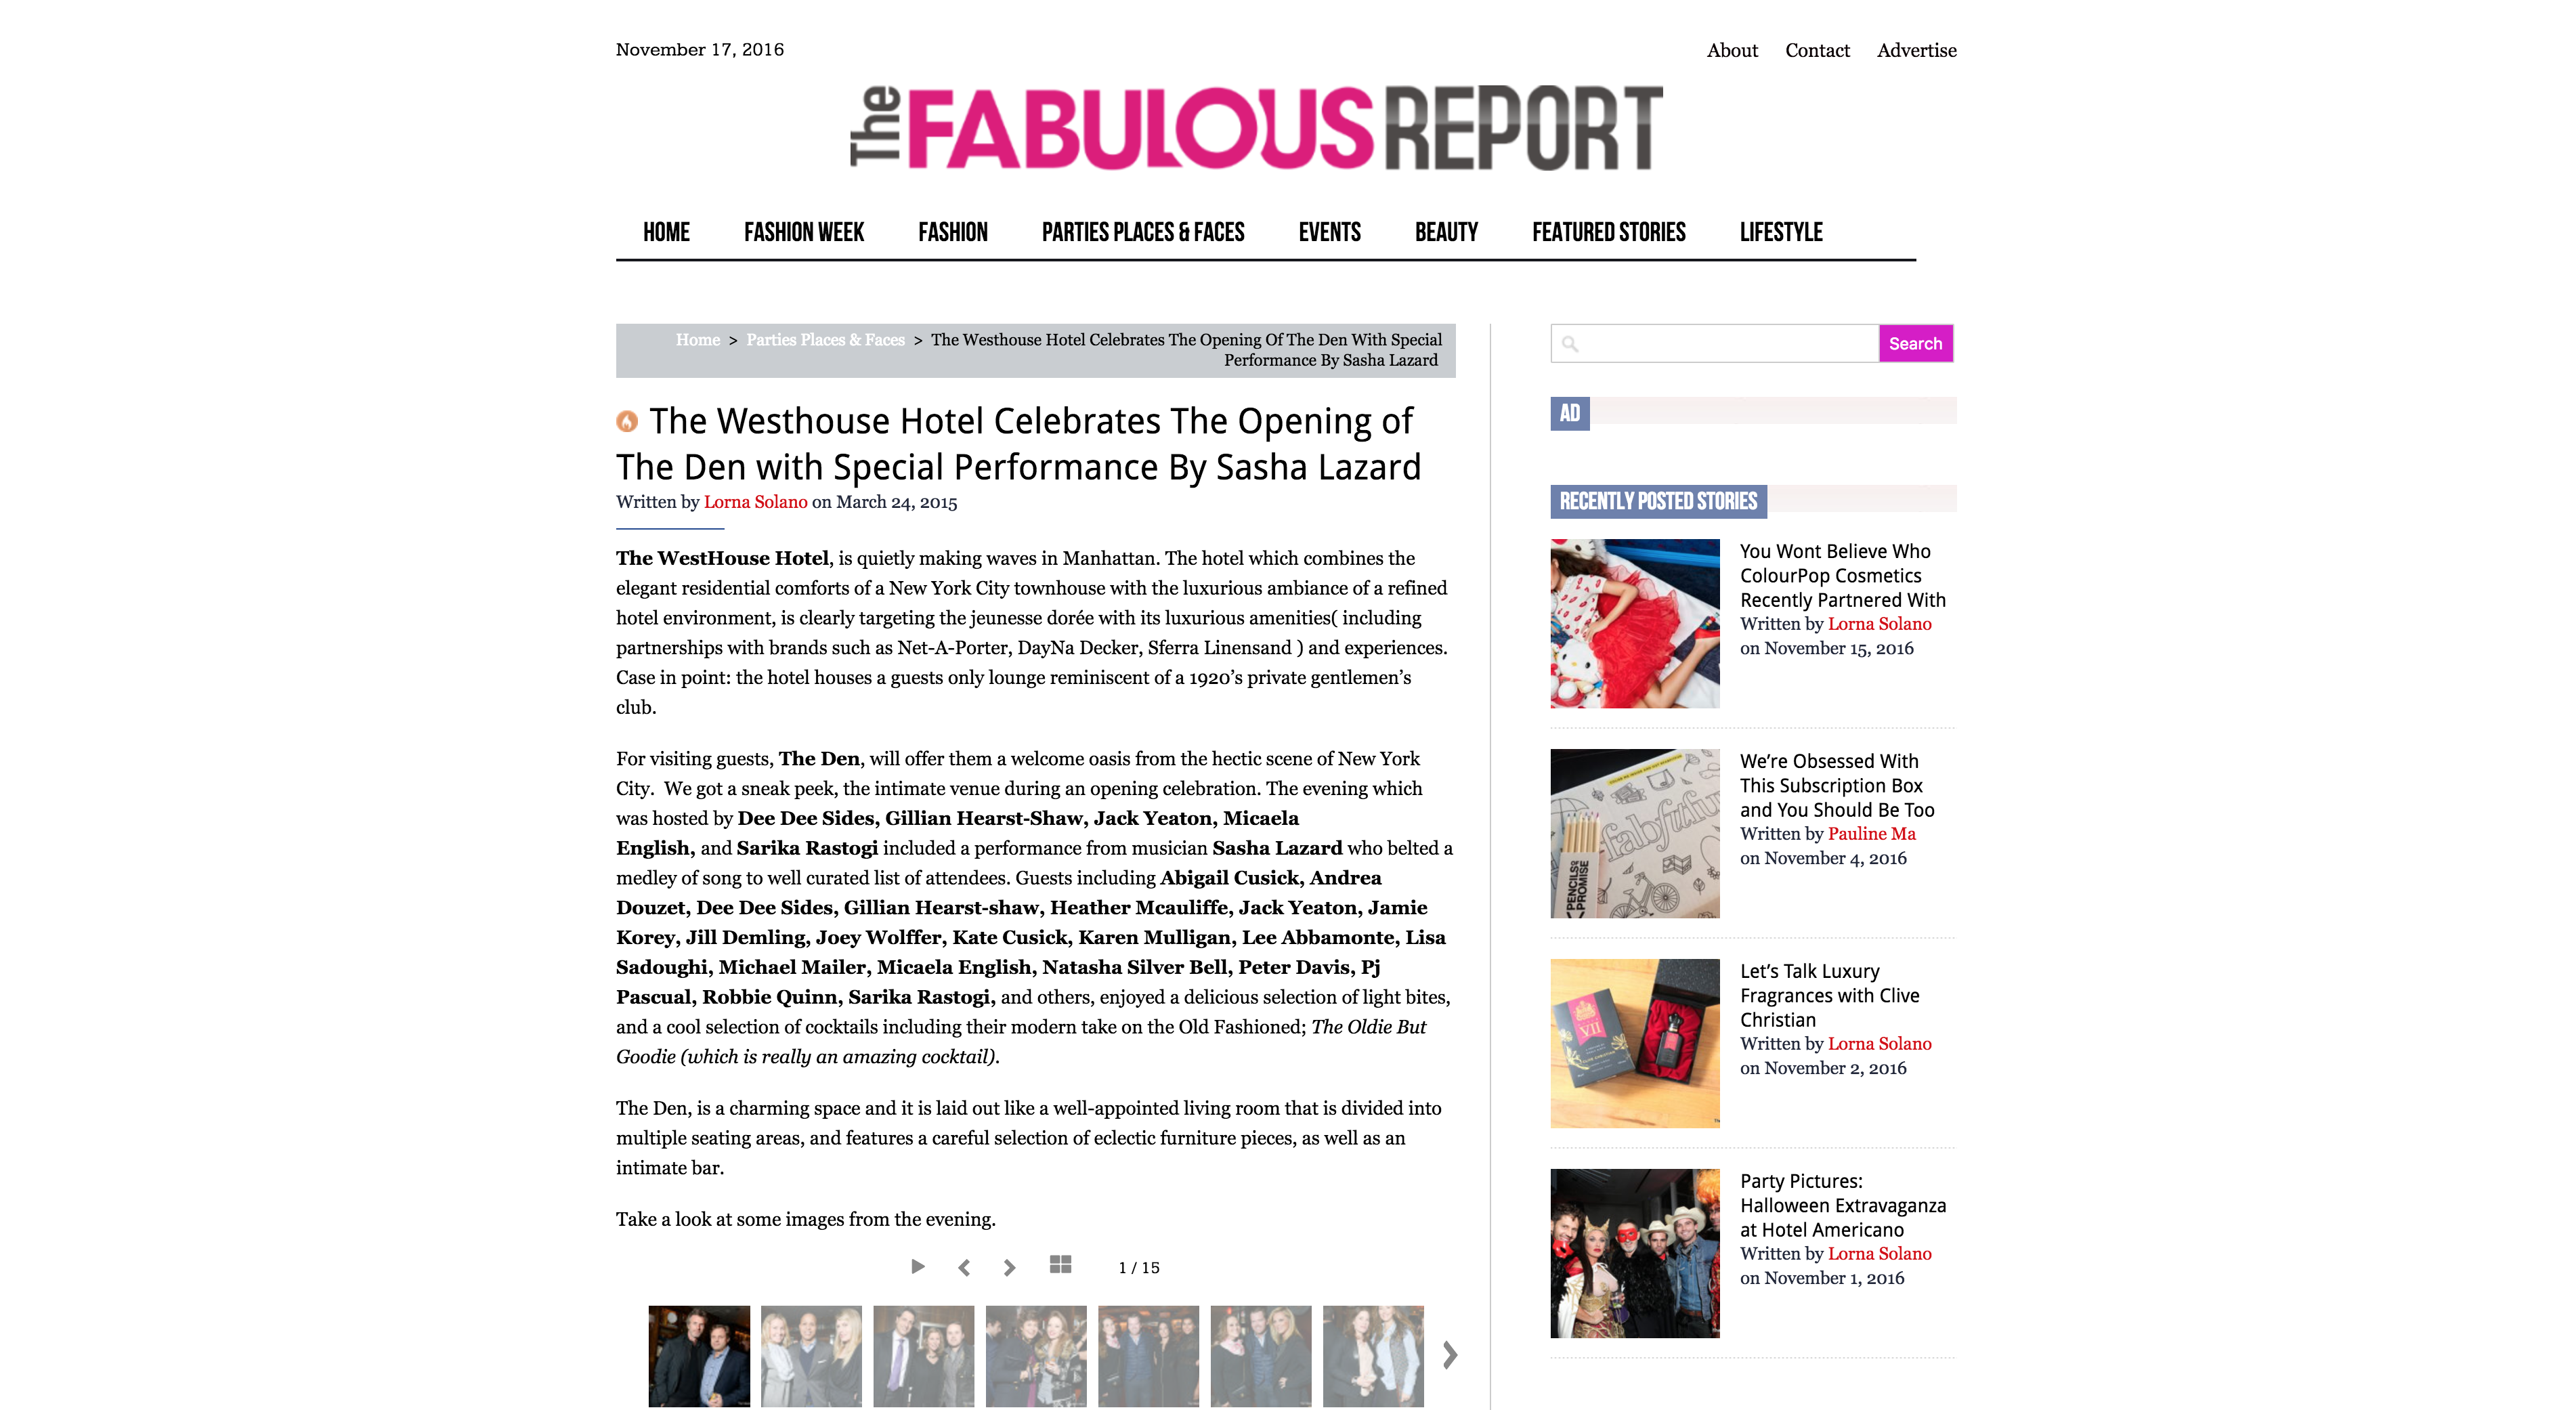 The Fabulous Report